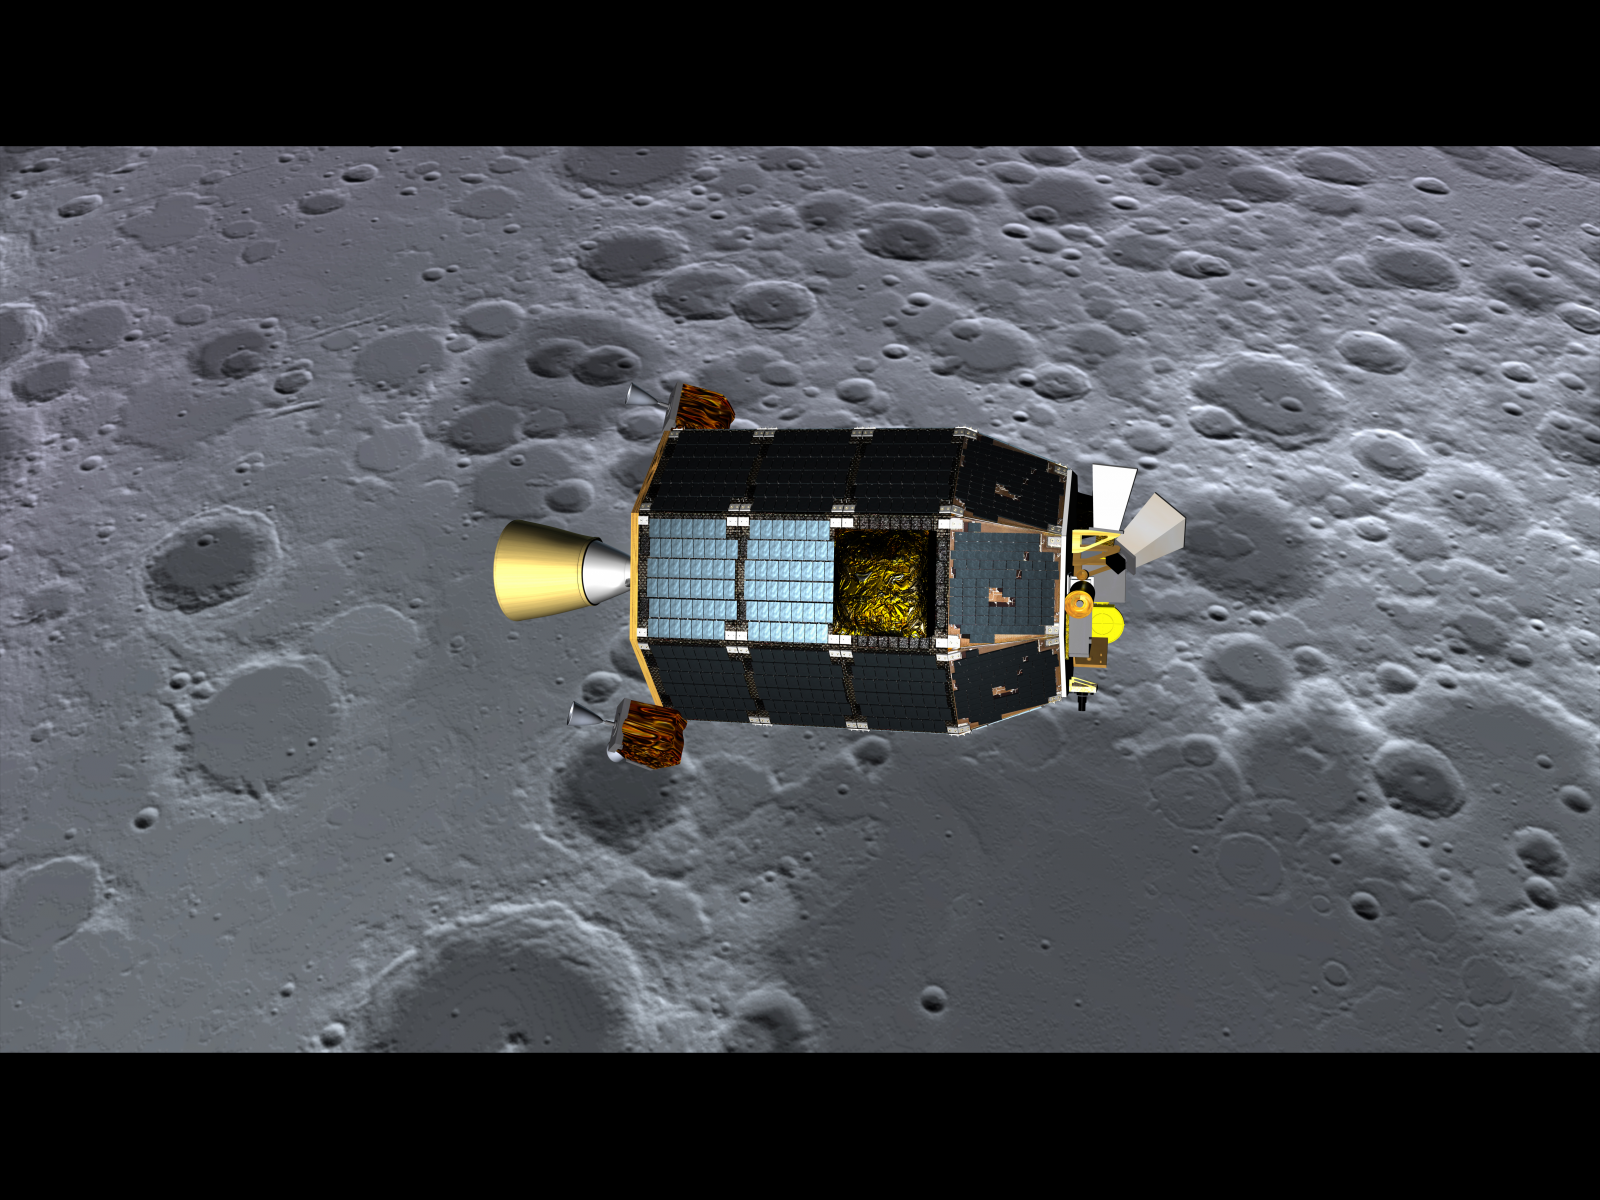 An artist's depiction of LADEE in orbit around the moon. (Dana Berry/NASA Ames)